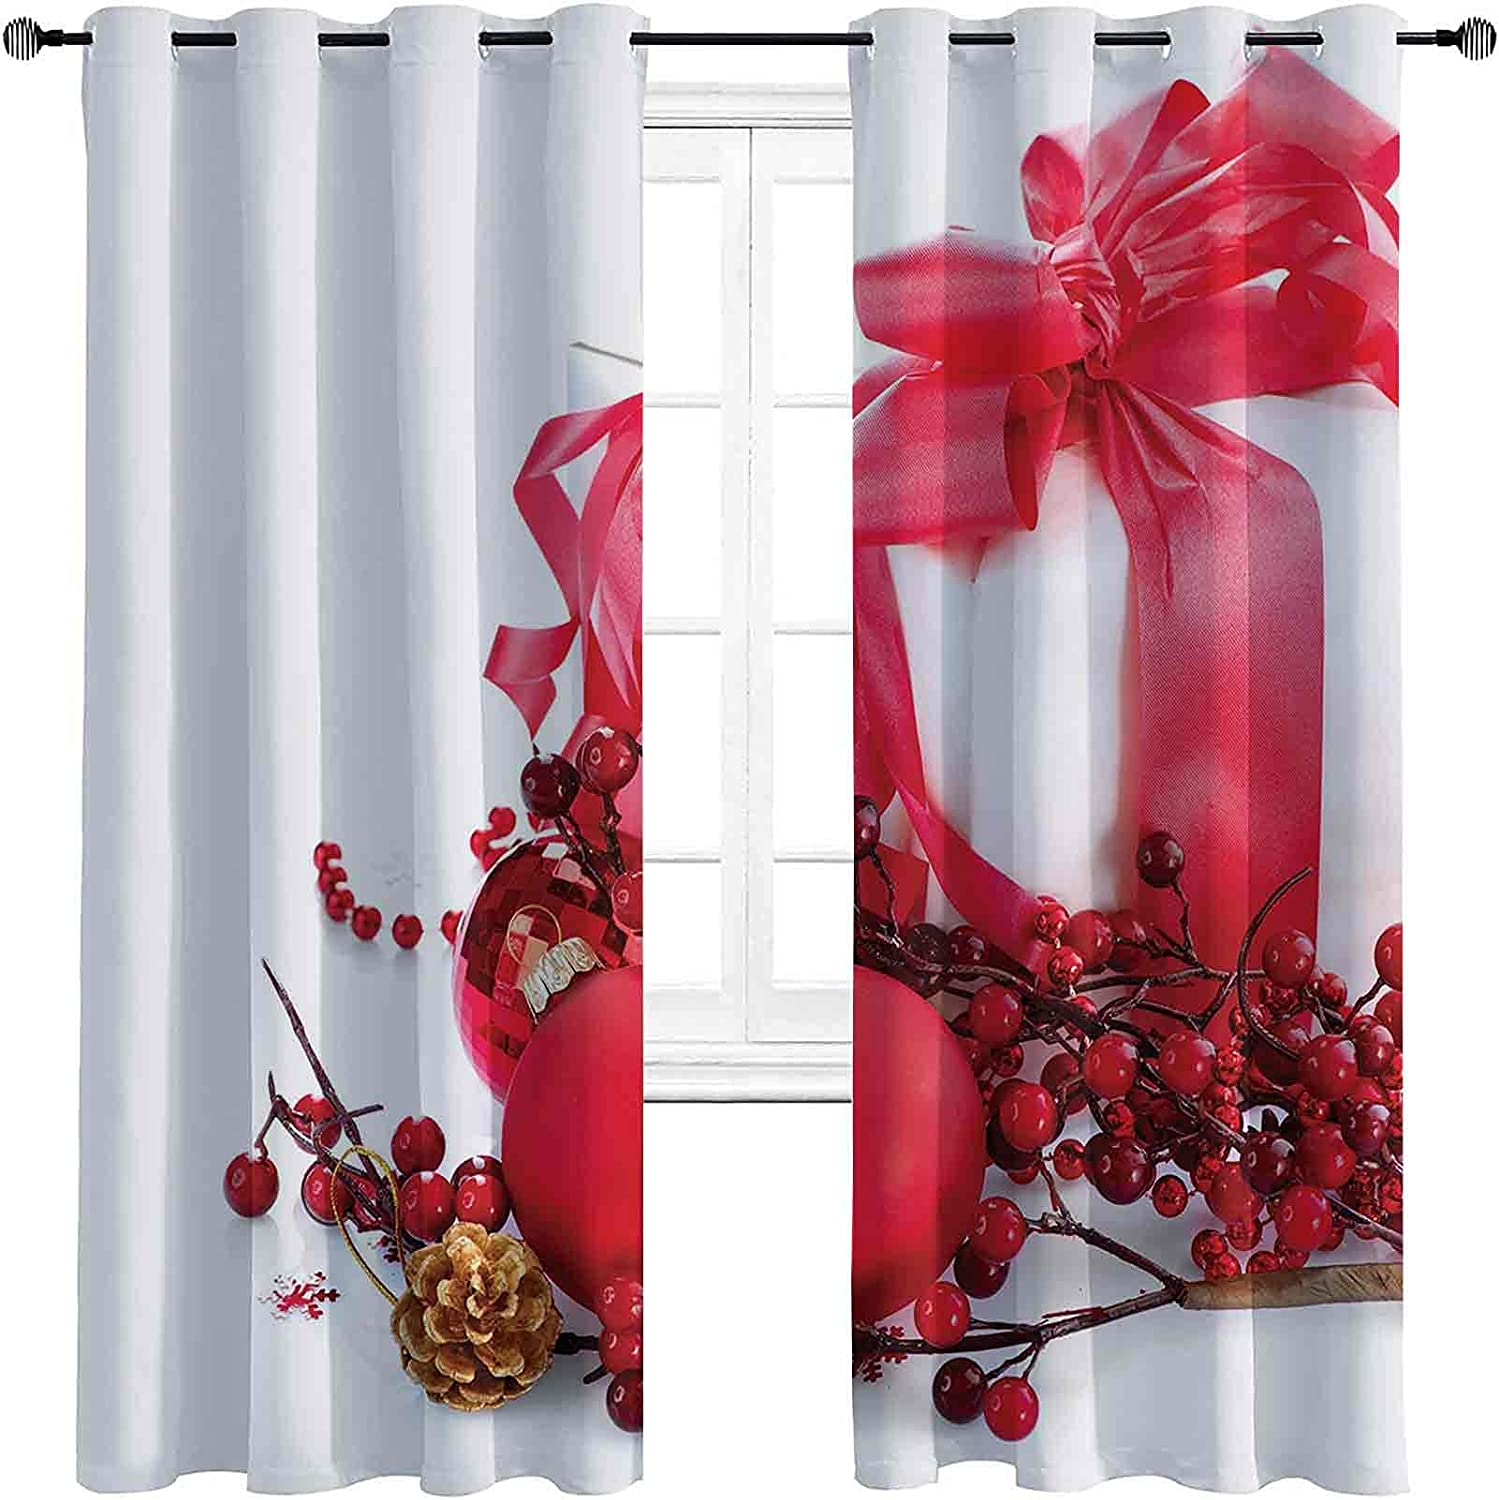 Christmas Bedroom Blackout Curtains New P Berries with Box Year sale Cash special price